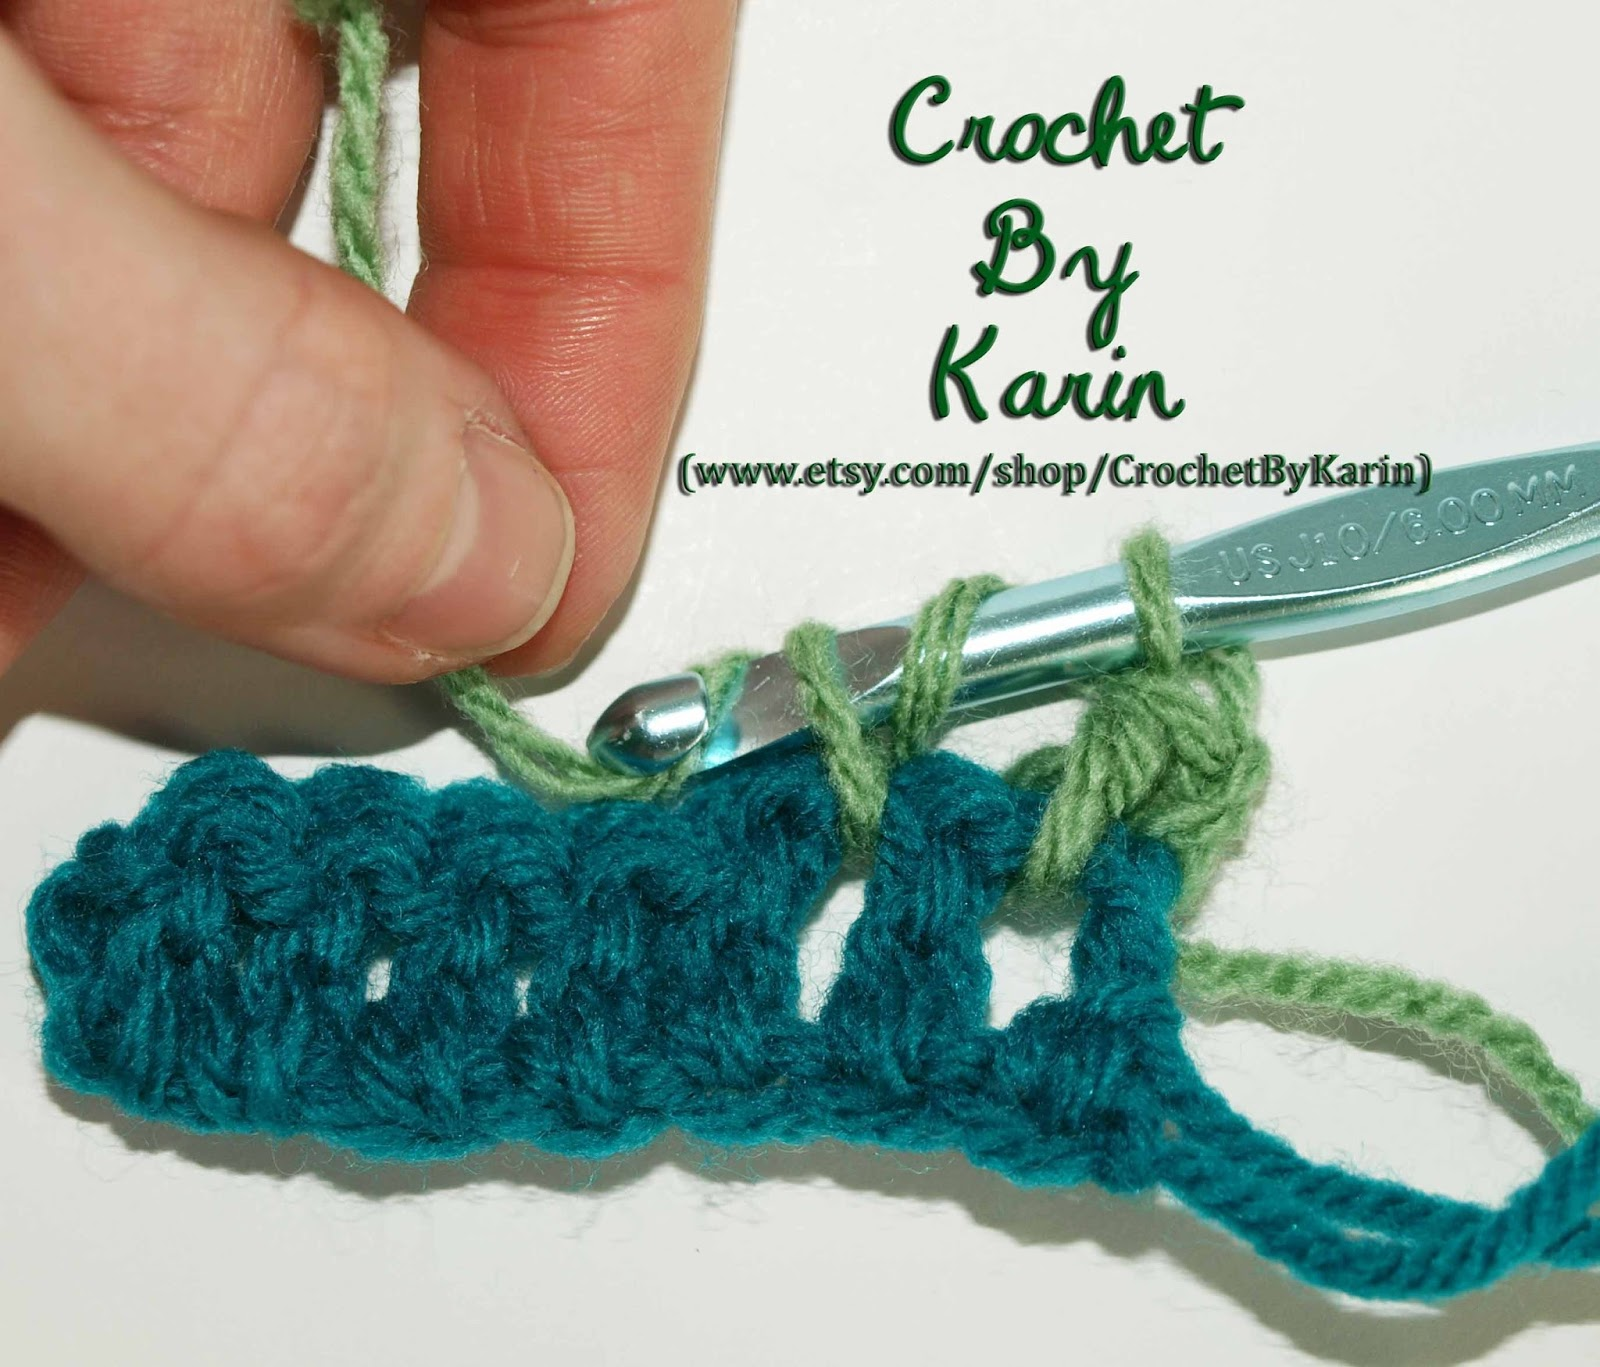 CrochetByKarin: Double Crochet Interlocking Stitch